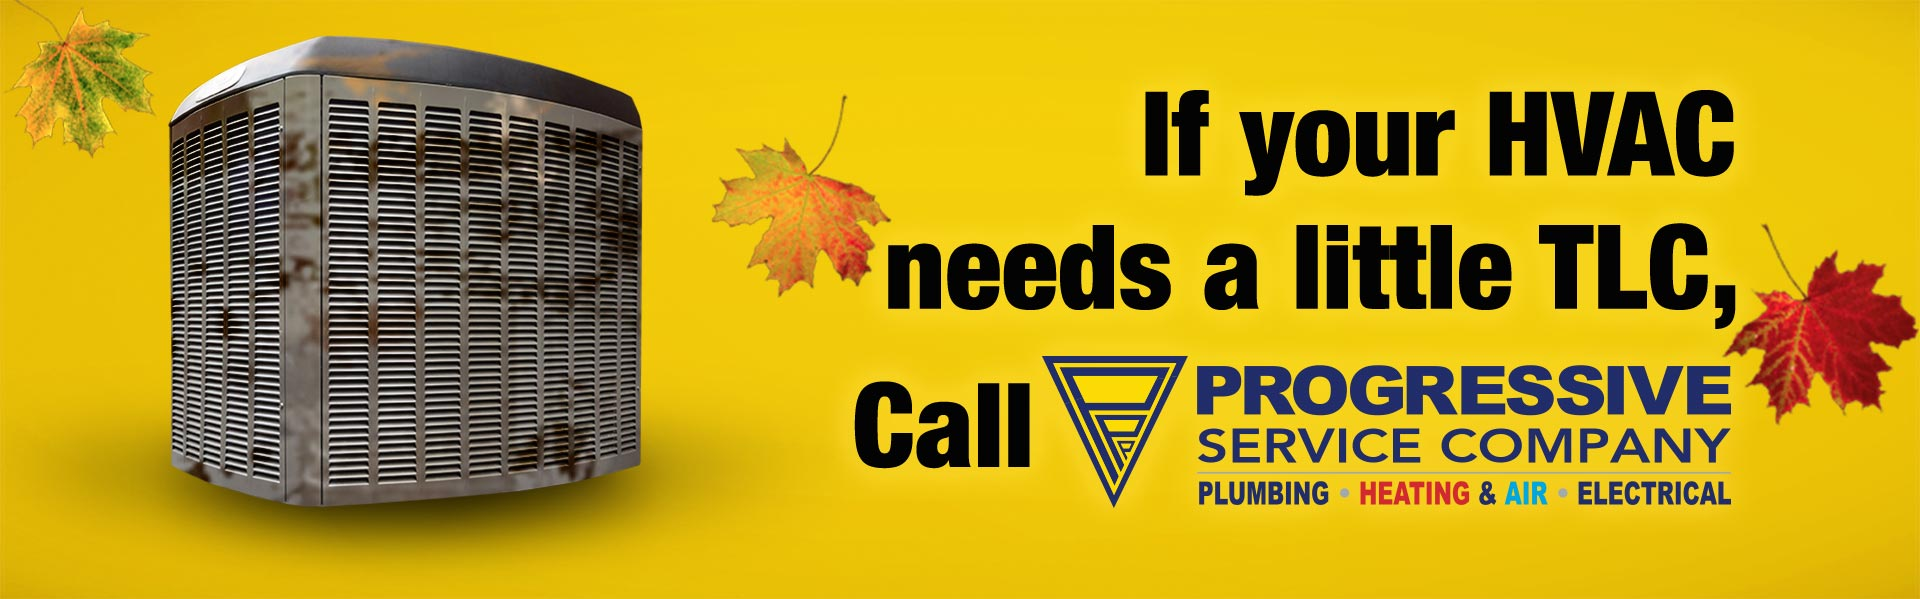 Plumbers, HVAC Technicians, and Electricians | 24/7 Service